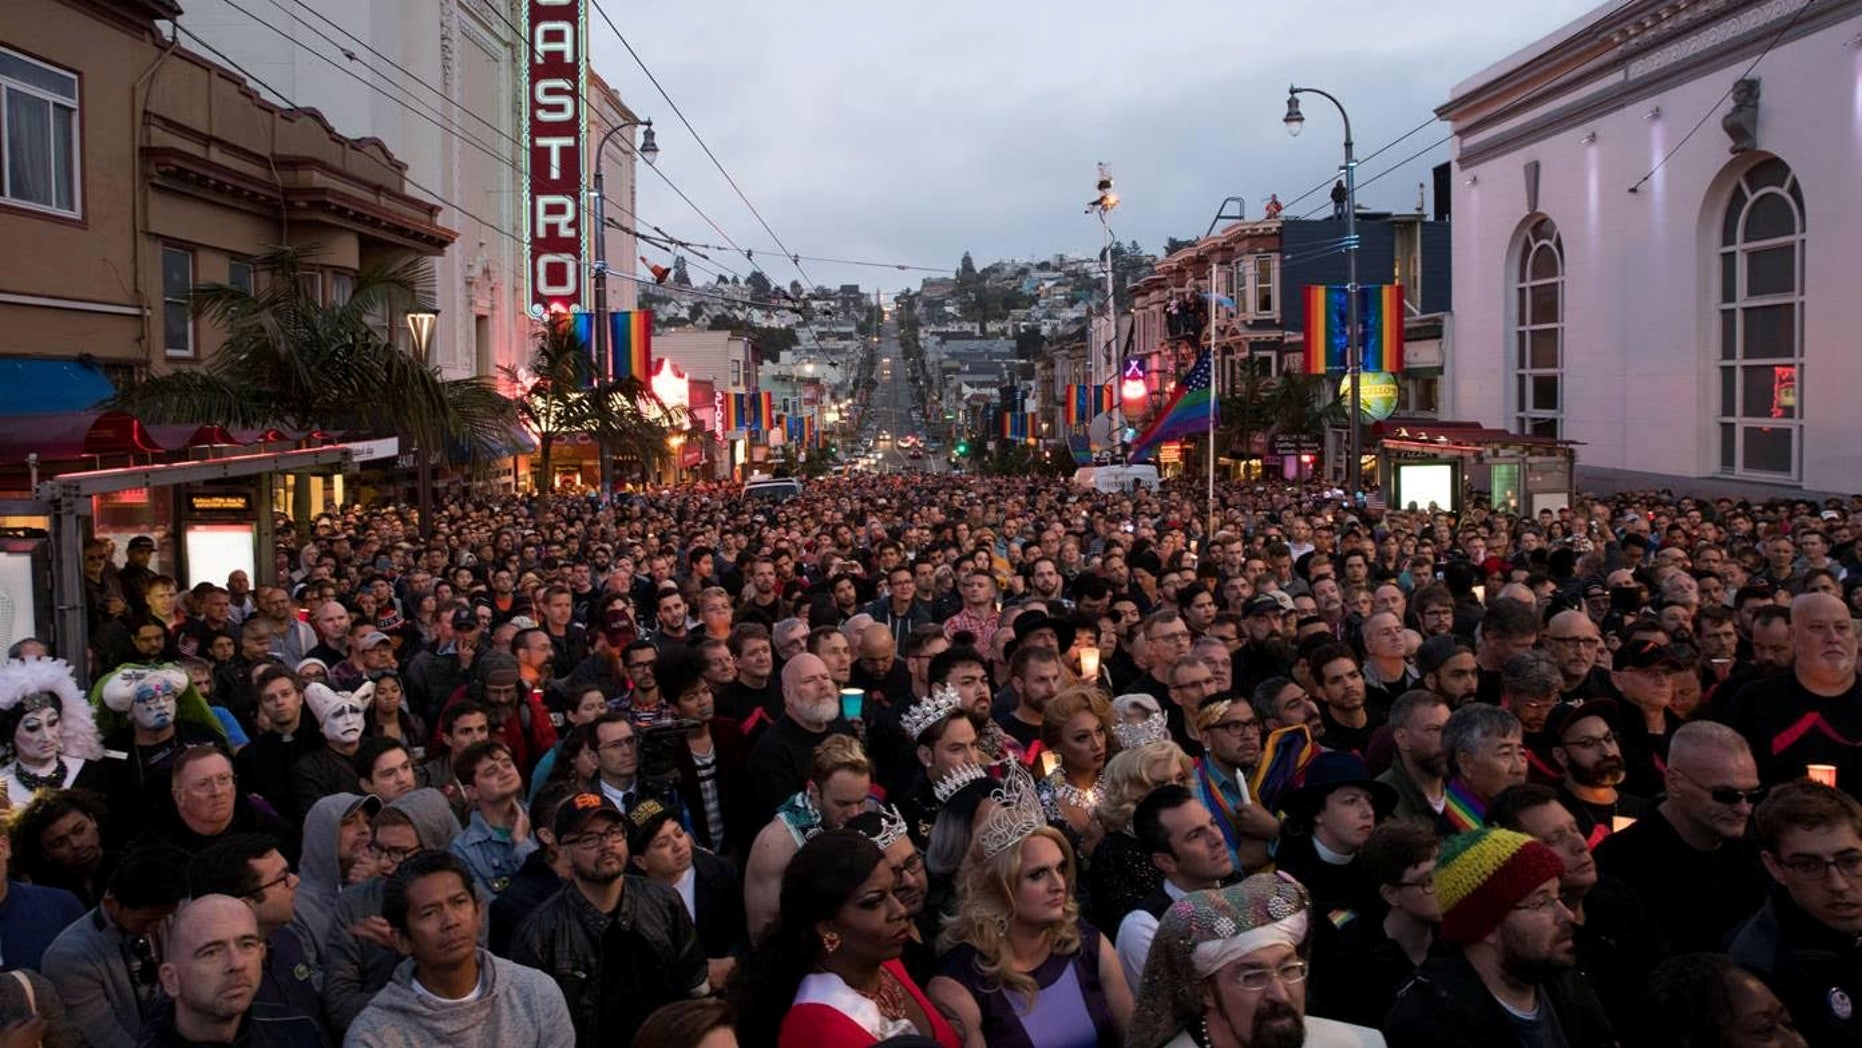 People gather in San Francisco's Castro District for a vigil for the victims of the Orlando attack on June 12